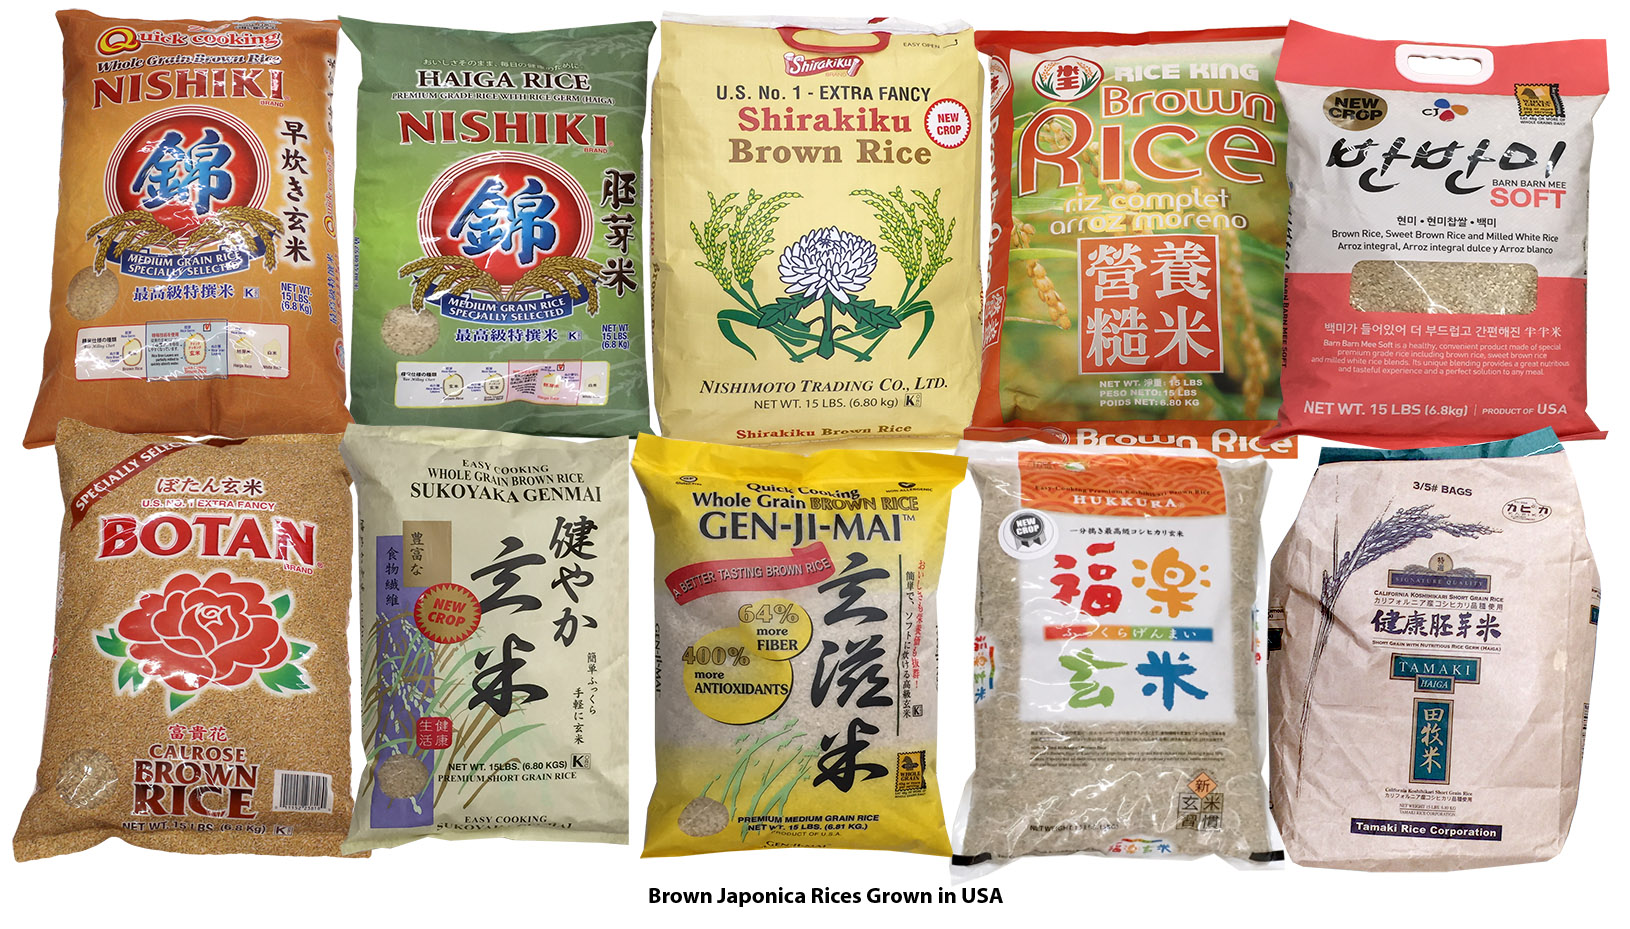 Brown Rices in US Supernarkets